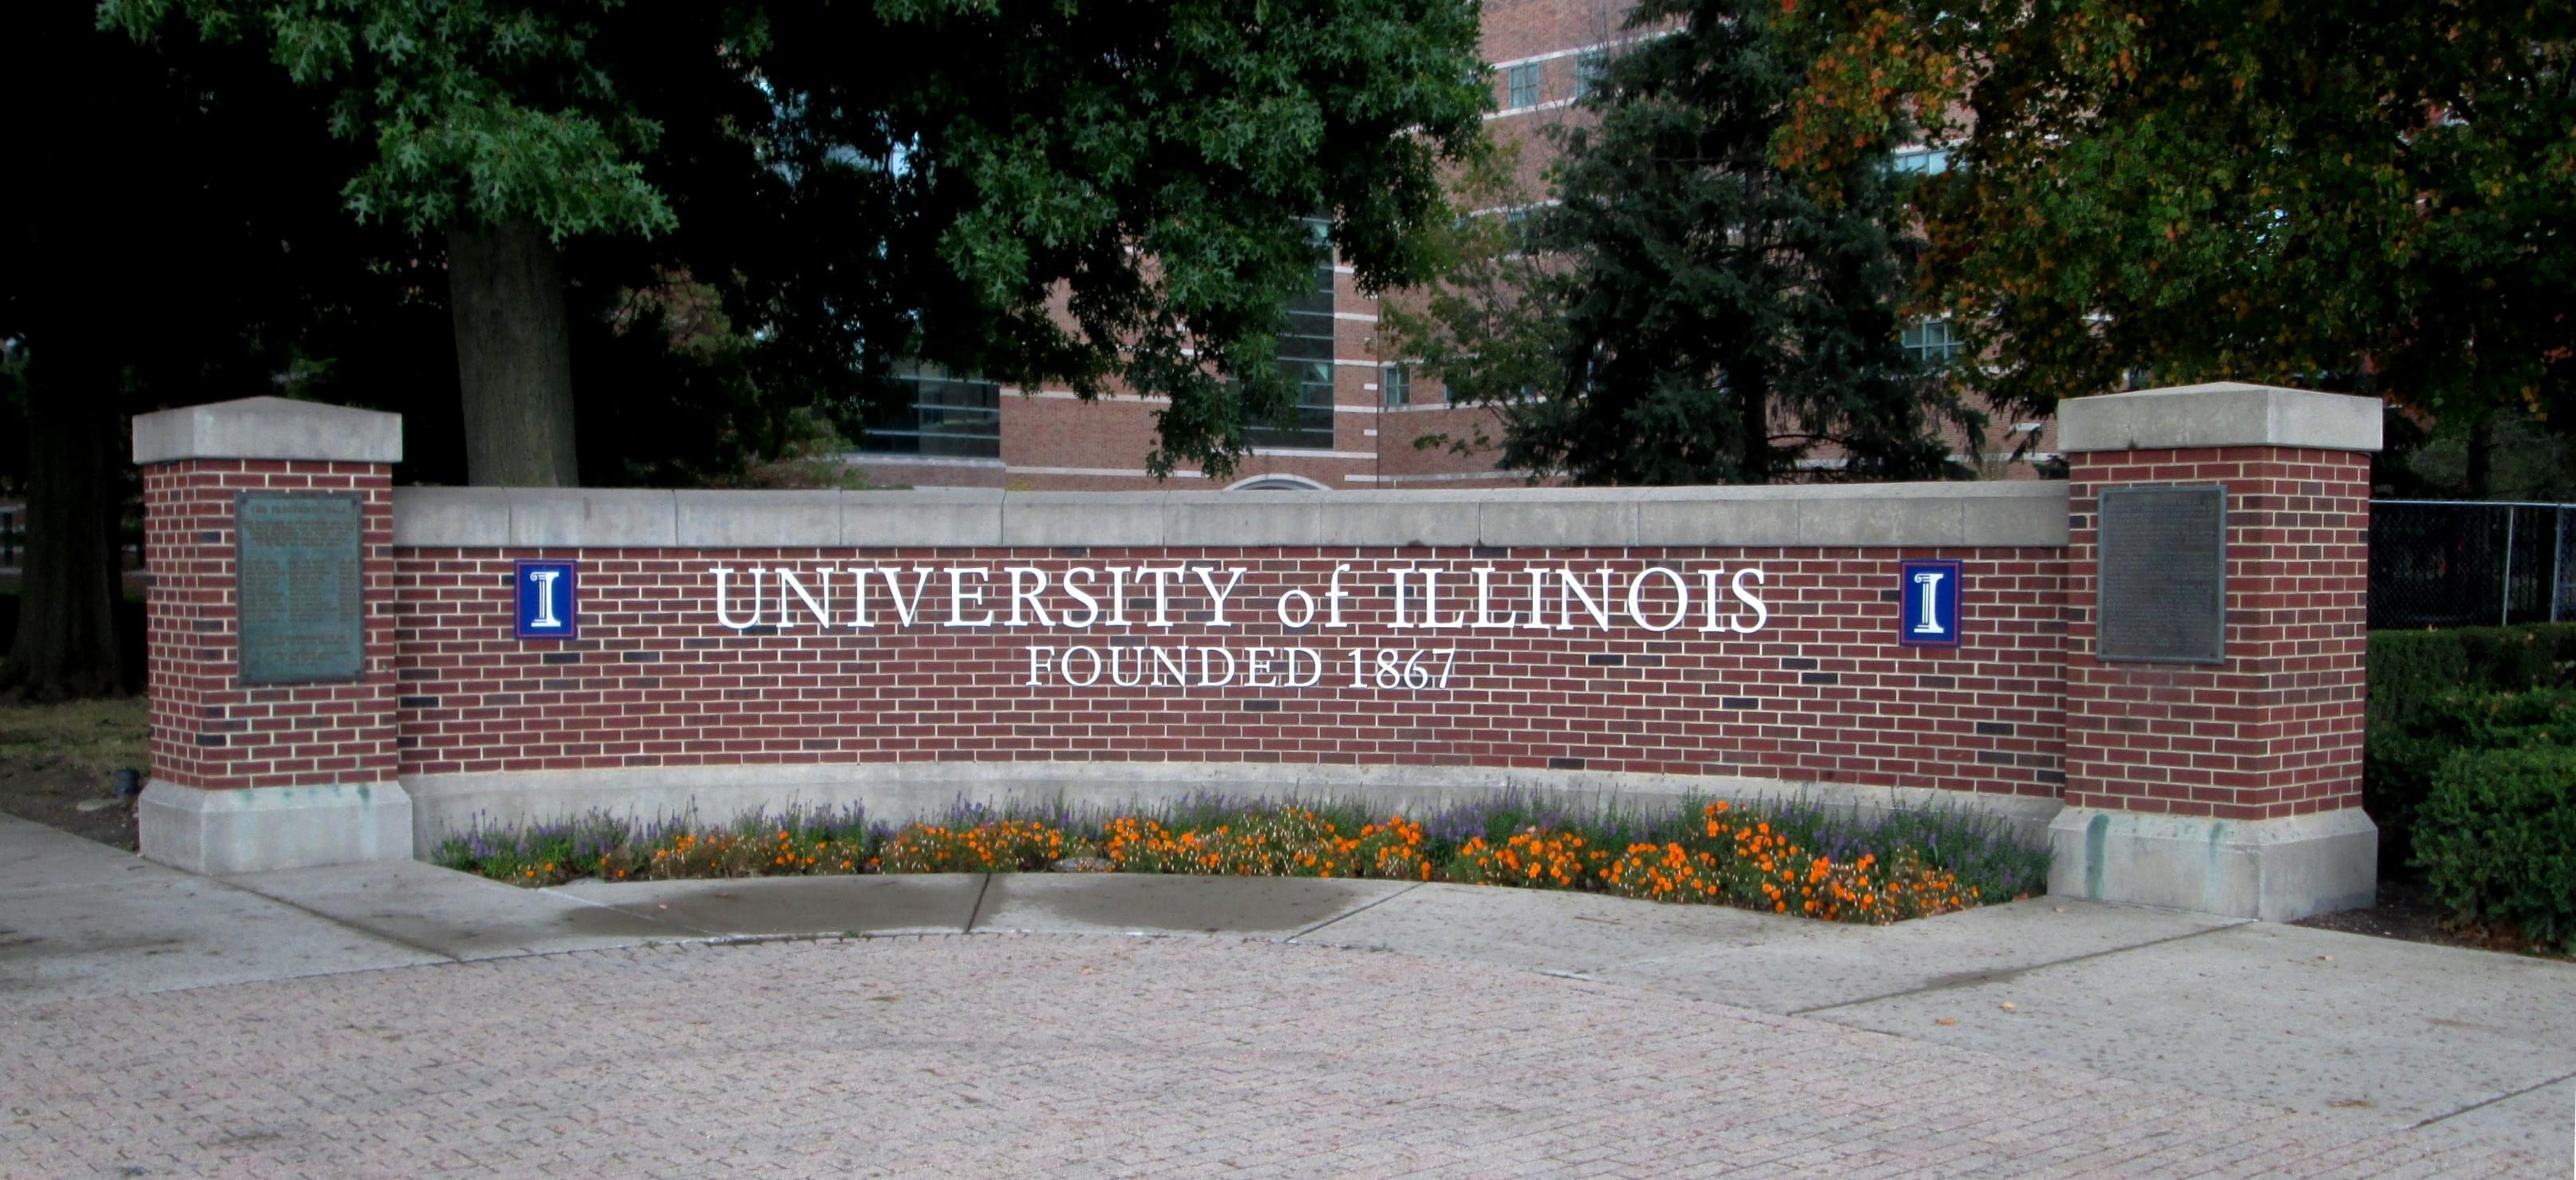 Entrance to the University of Illinois Urbana campus